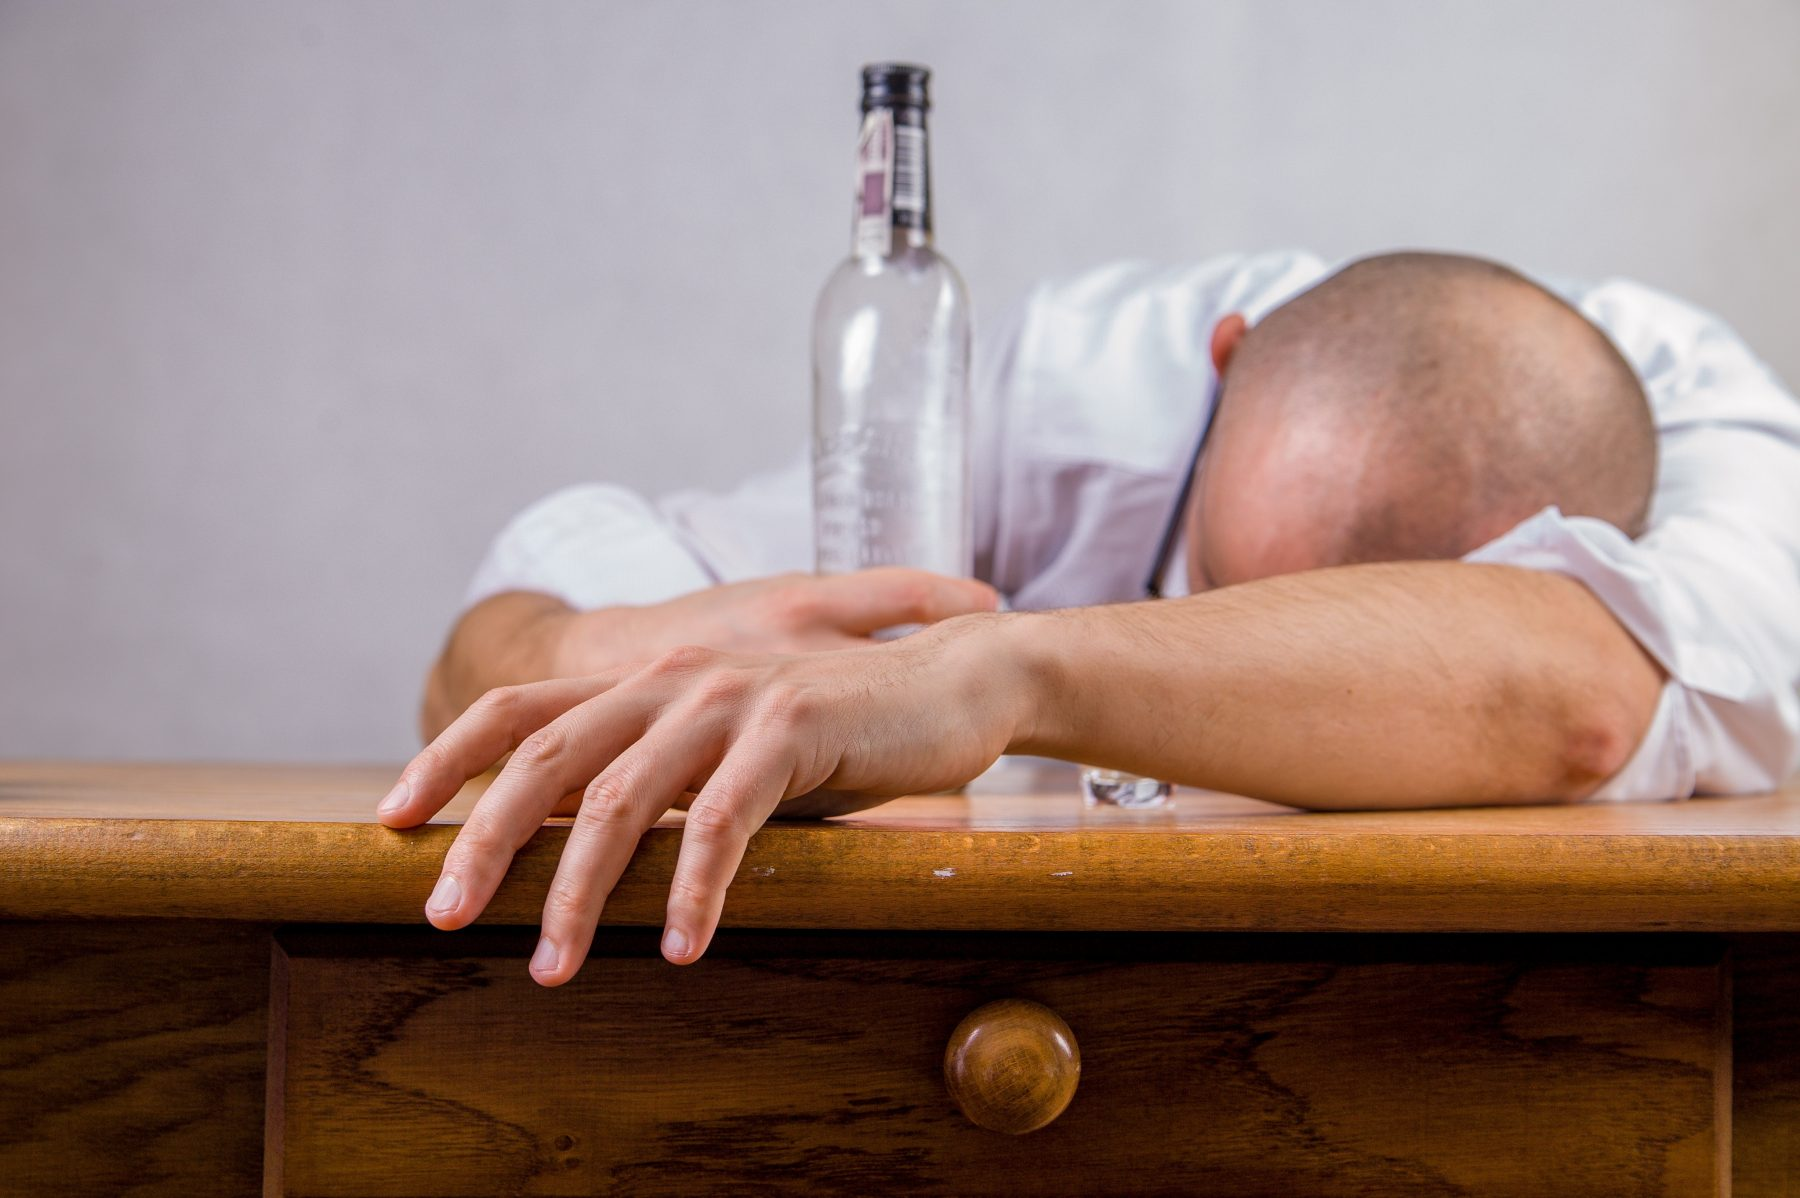 Top 10 Symptoms of Alcohol Abuse